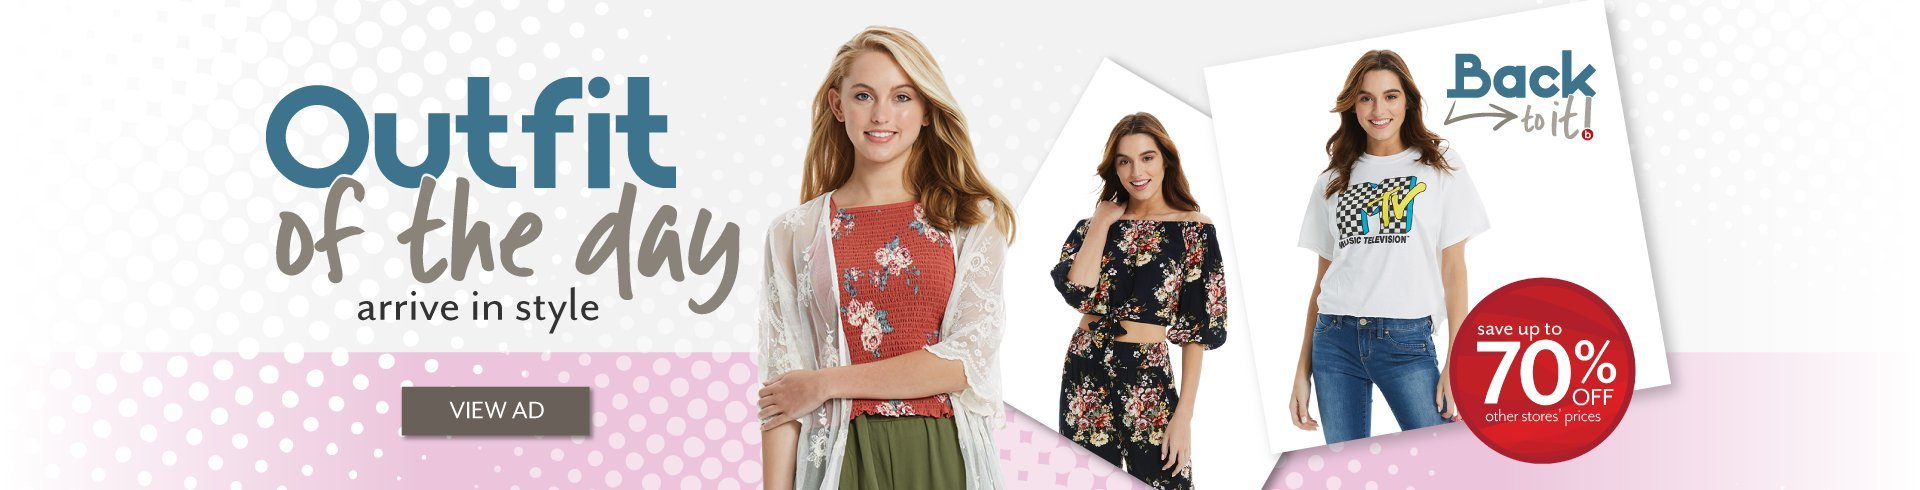 Shop the latest trends in Juniors at Bealls Outlet